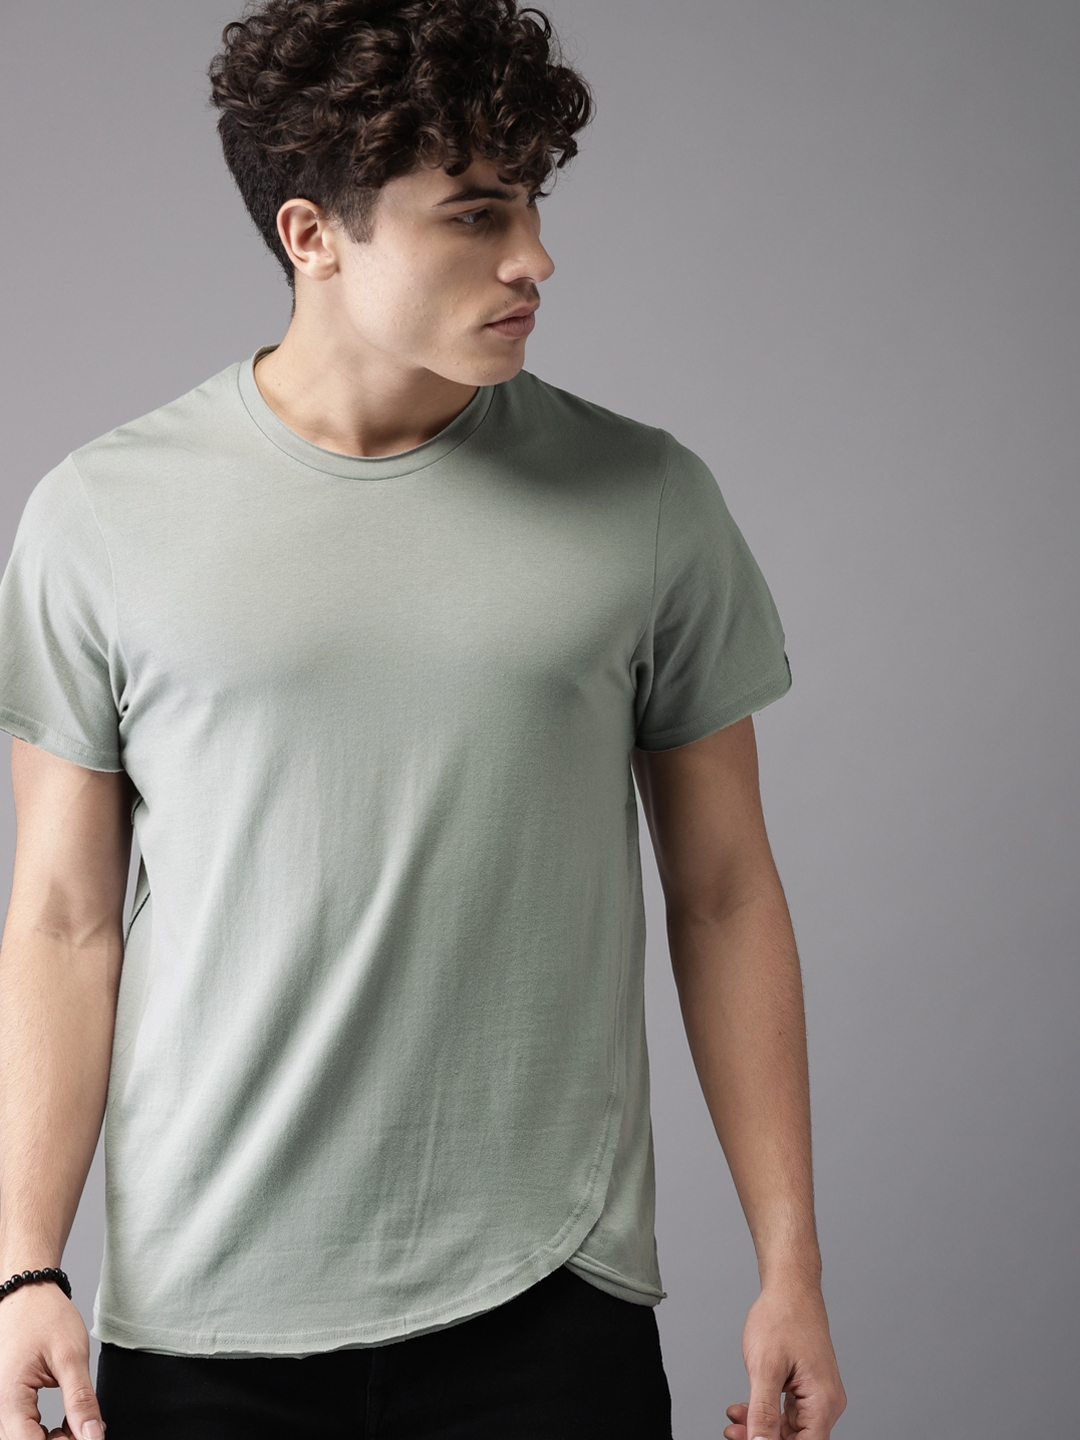 afc15b43daa1 Buy Moda Rapido Men Grey Solid Round Neck T Shirt - Tshirts for Men ...